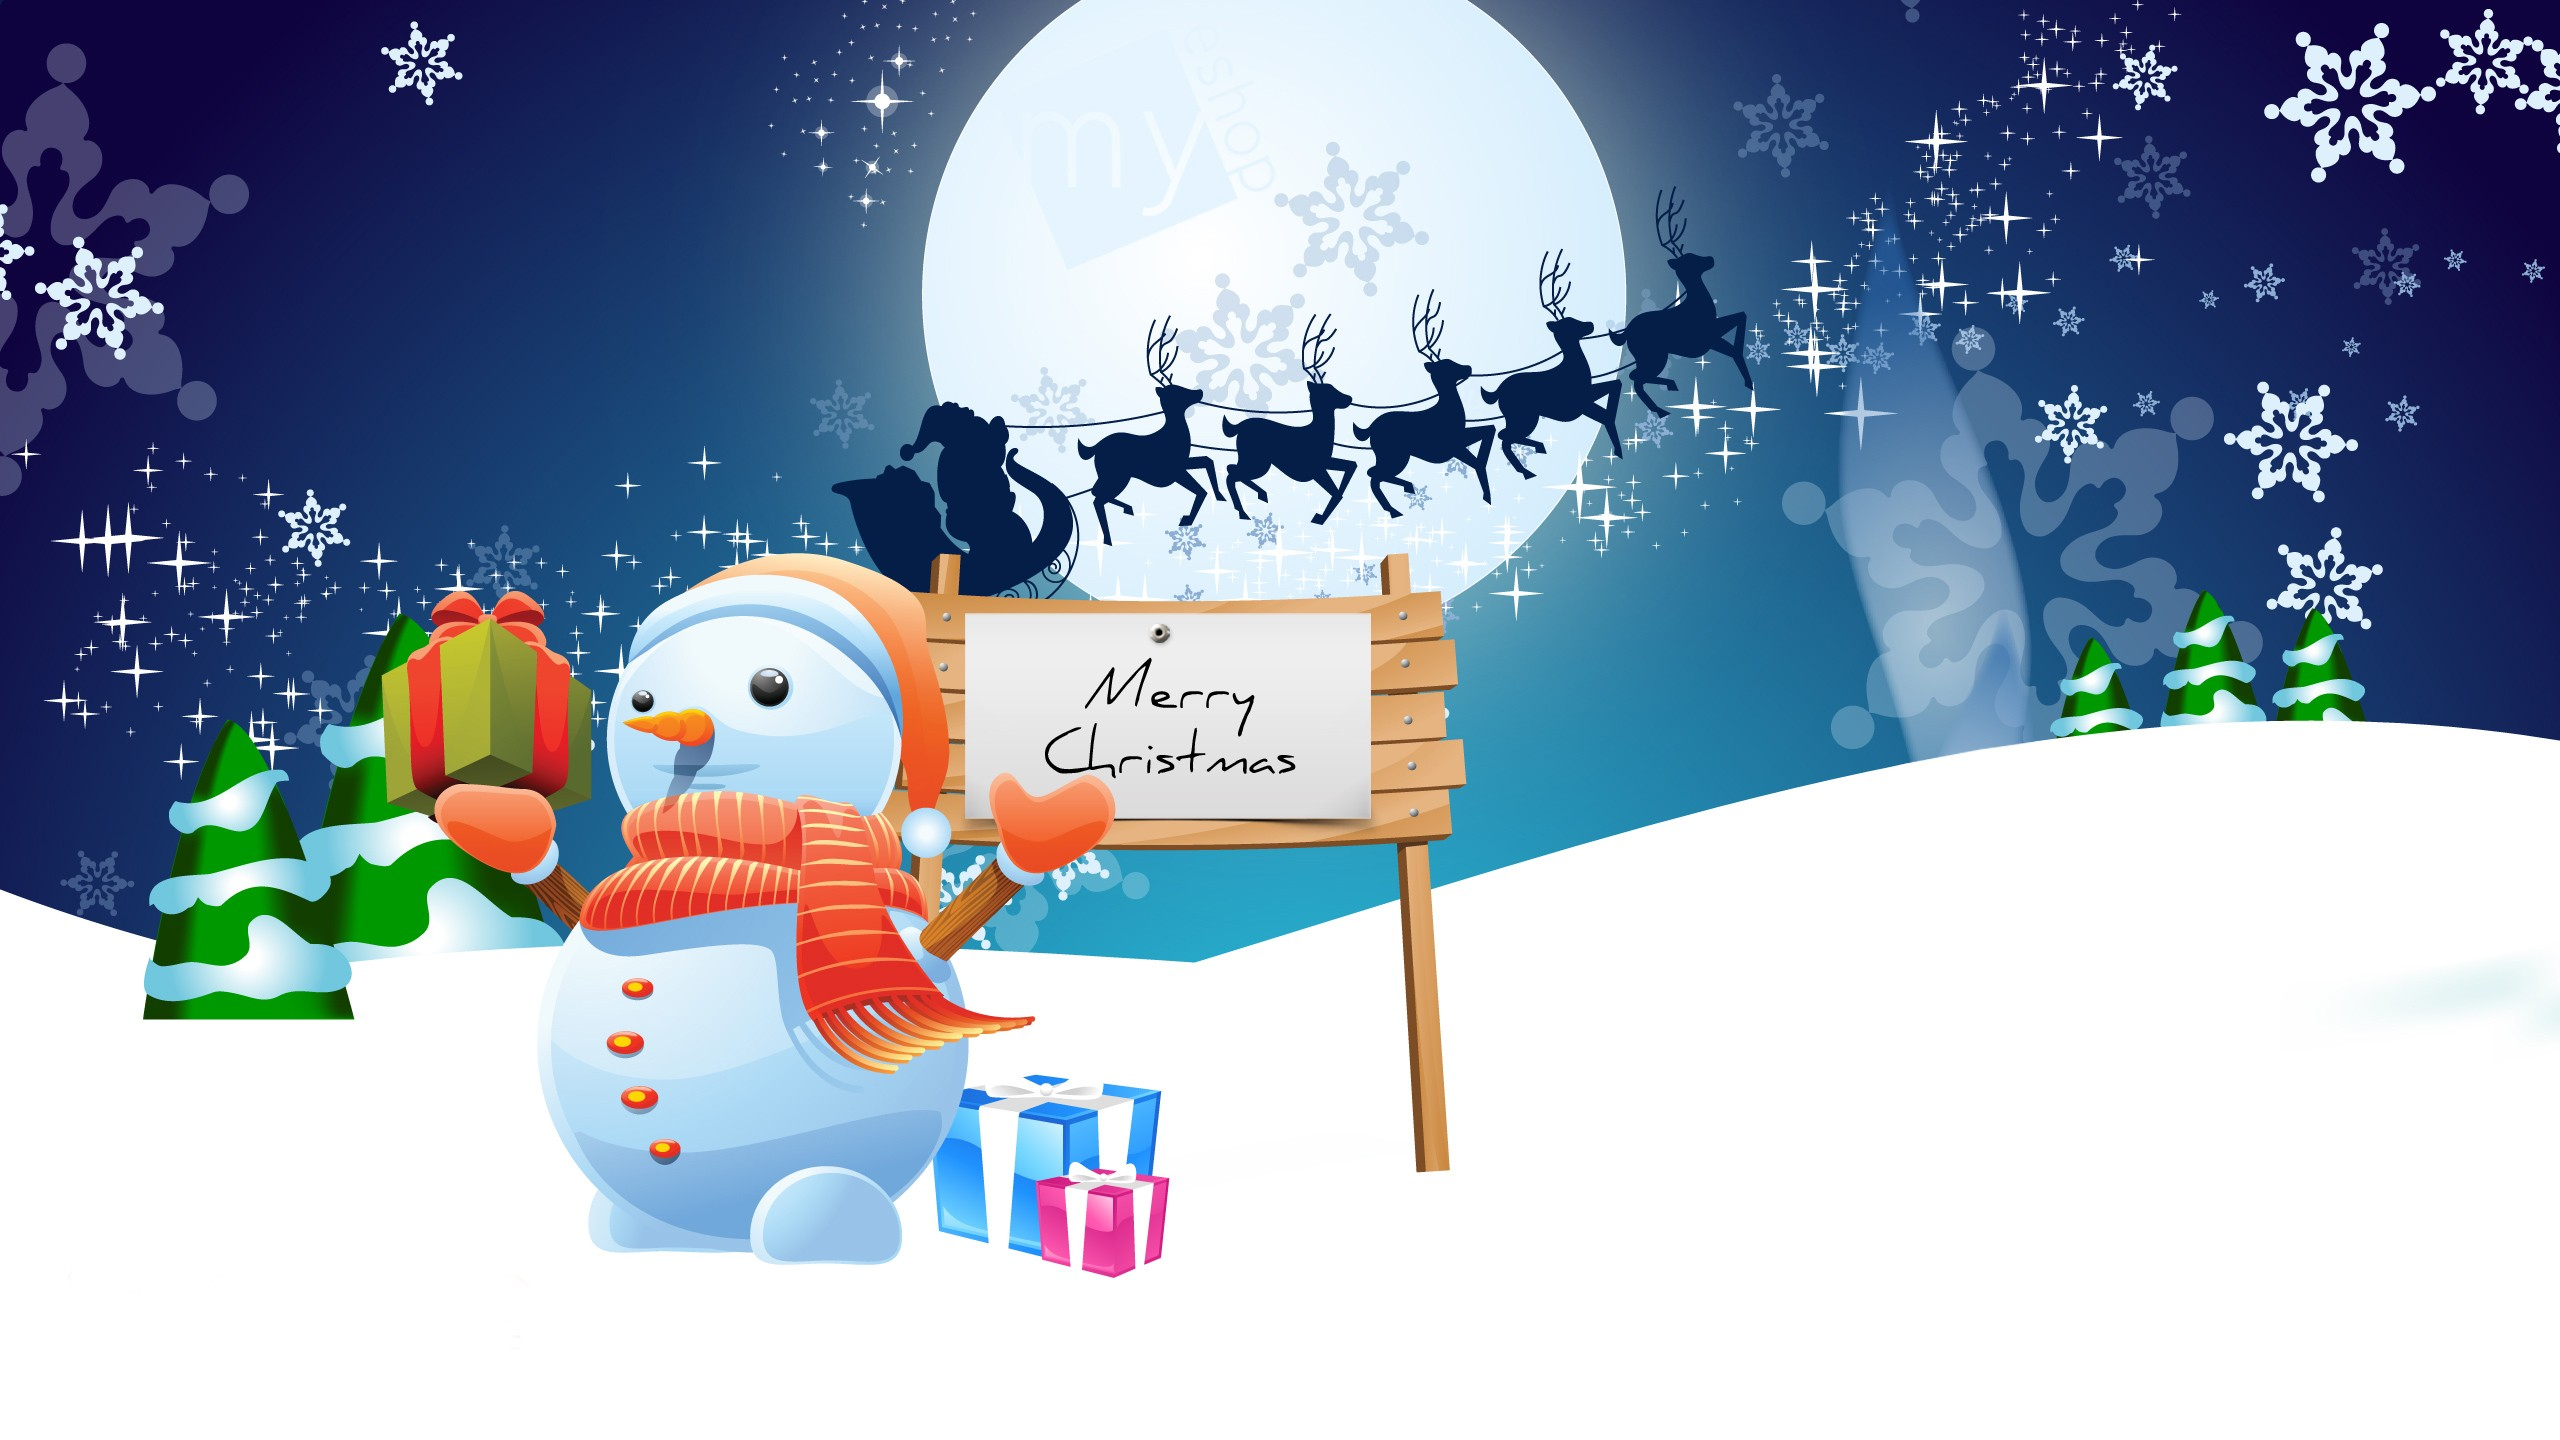 1366x768 Wallpapers Hd Cars Snowman Merry Christmas Wallpapers Hd Wallpapers Id 10574